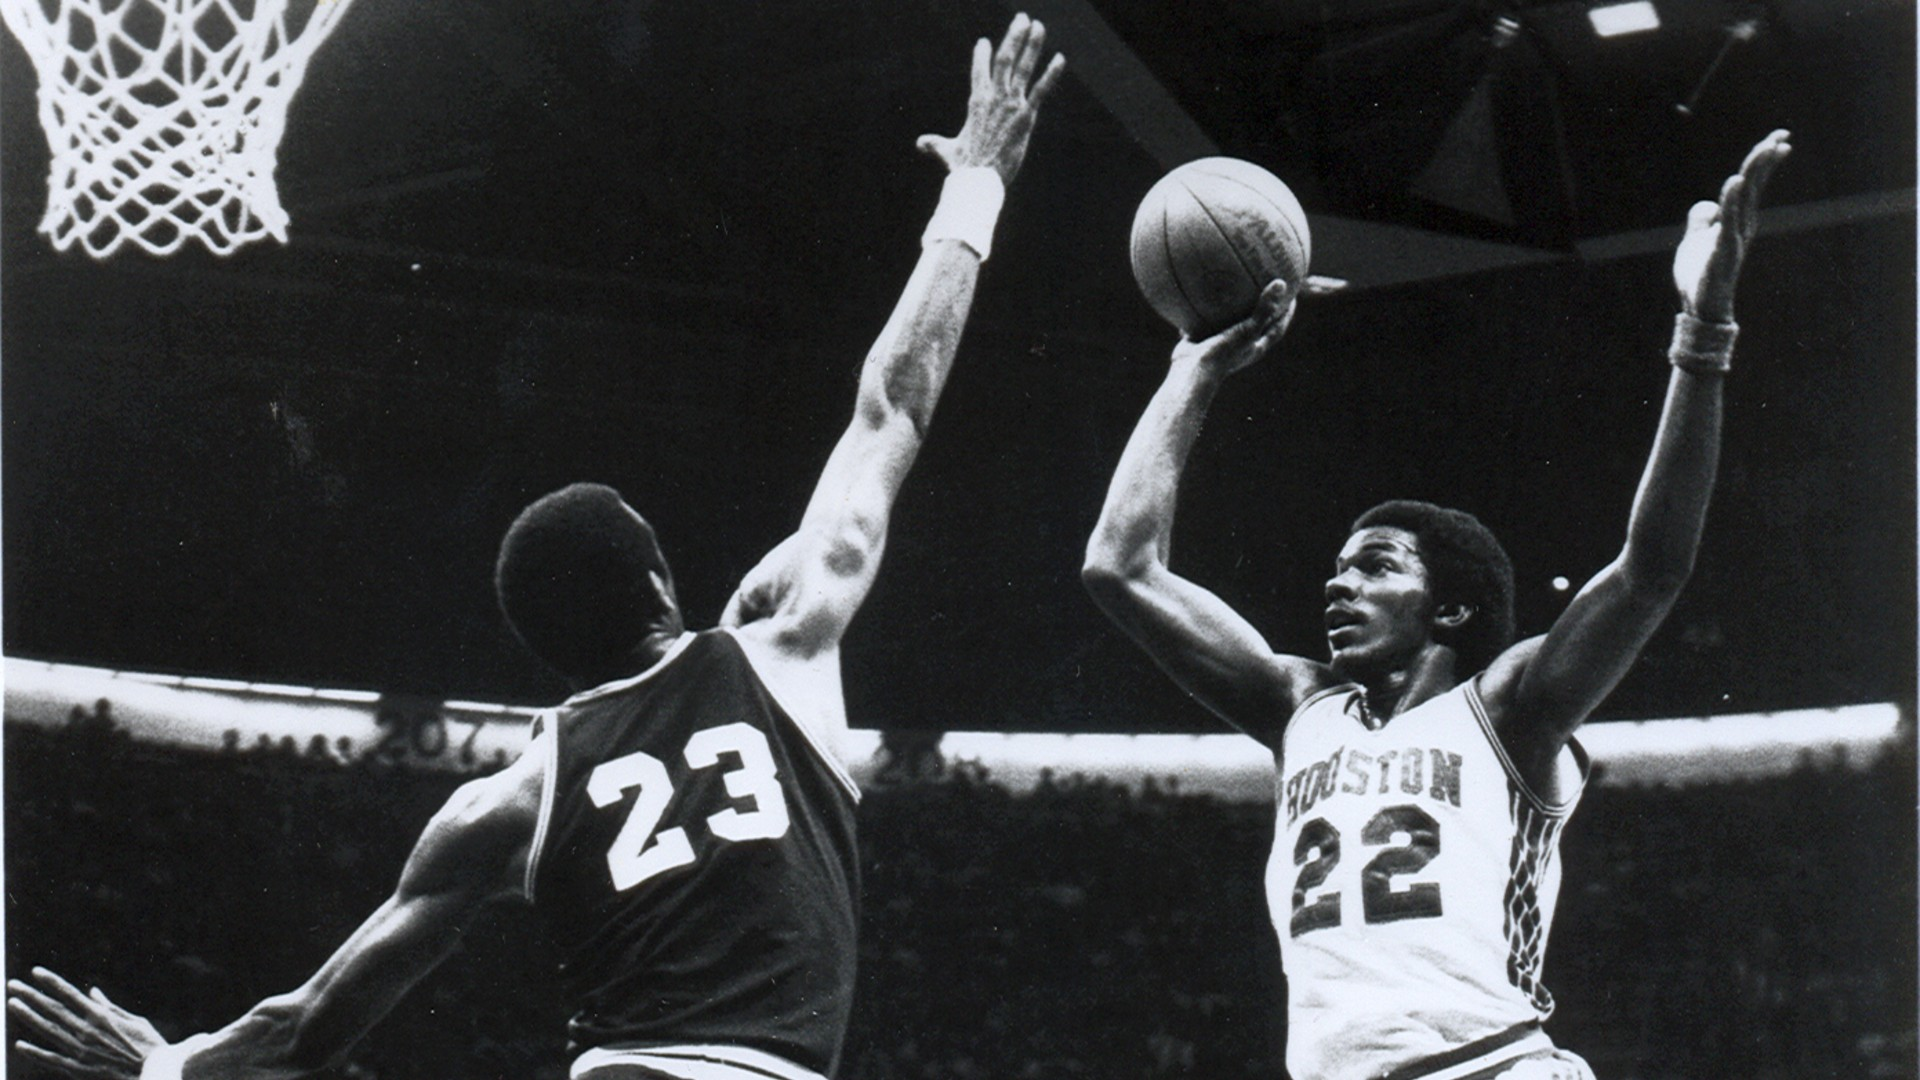 What is Phi Slama Jama? Remembering Houston's high-flying 1980s teams, legendary players